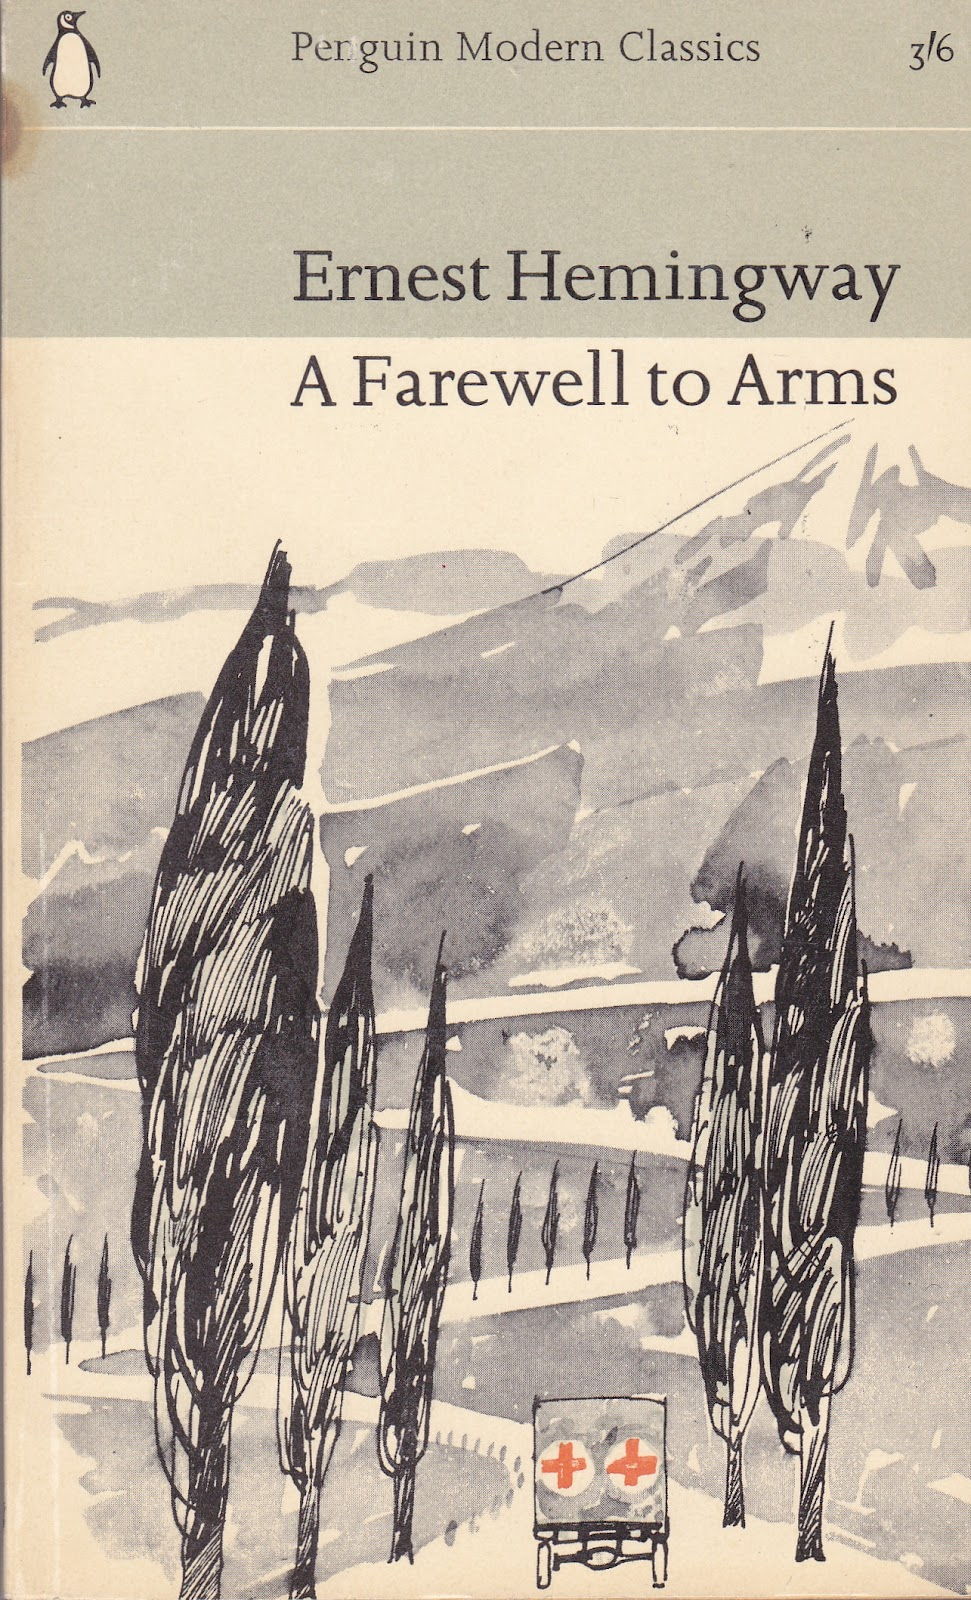 ernest hemingway a farewell to arms thesis Ways to find thesis ideas for a farewell to arms, this i believe essay topics in the homosexual adult novel a farewell to arms by ernest hemingway.